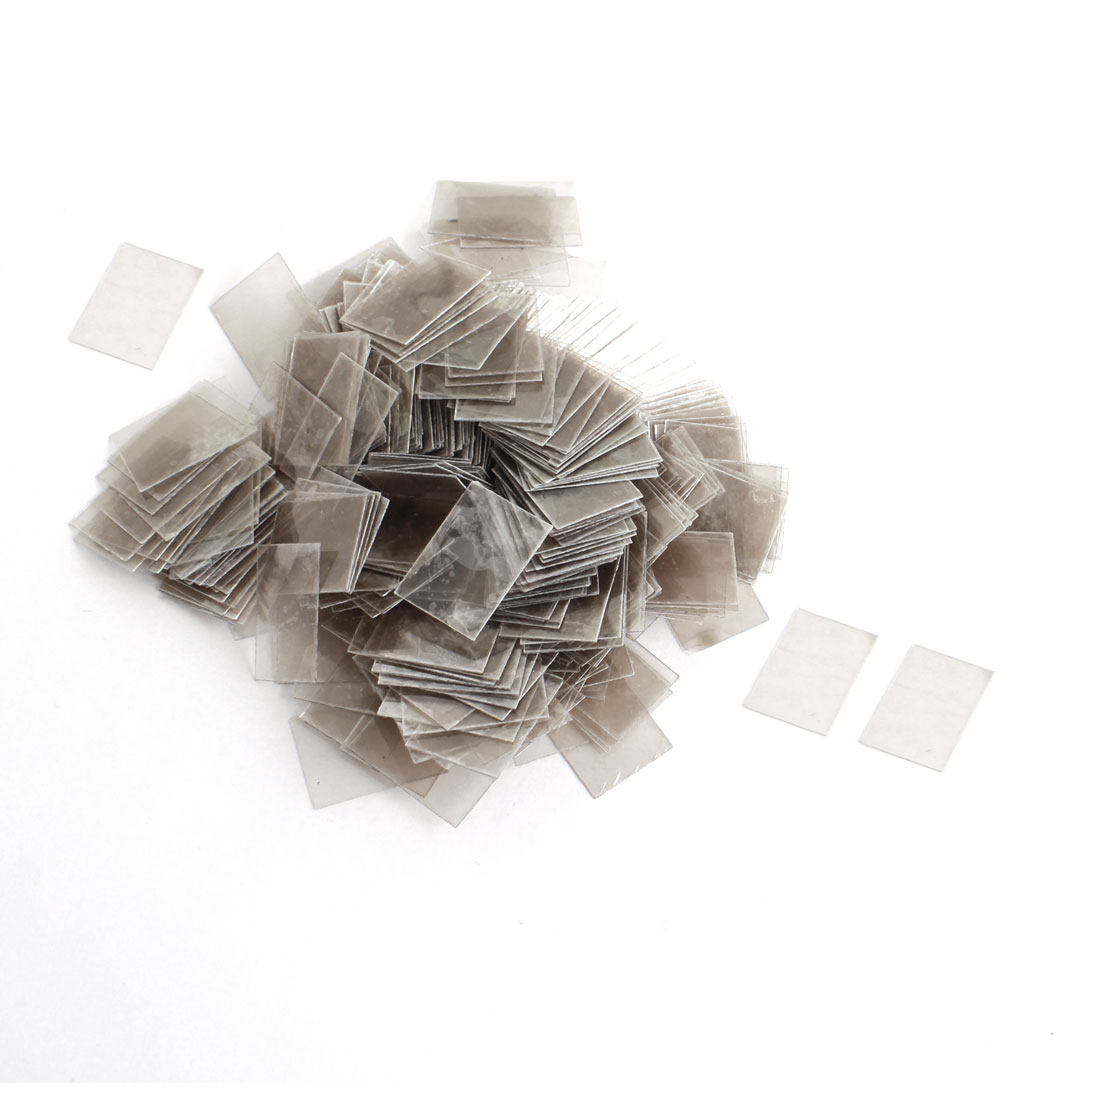 500pcs 13mm x 18cm x 0.12mm Mica Insulator Sheets Replacement